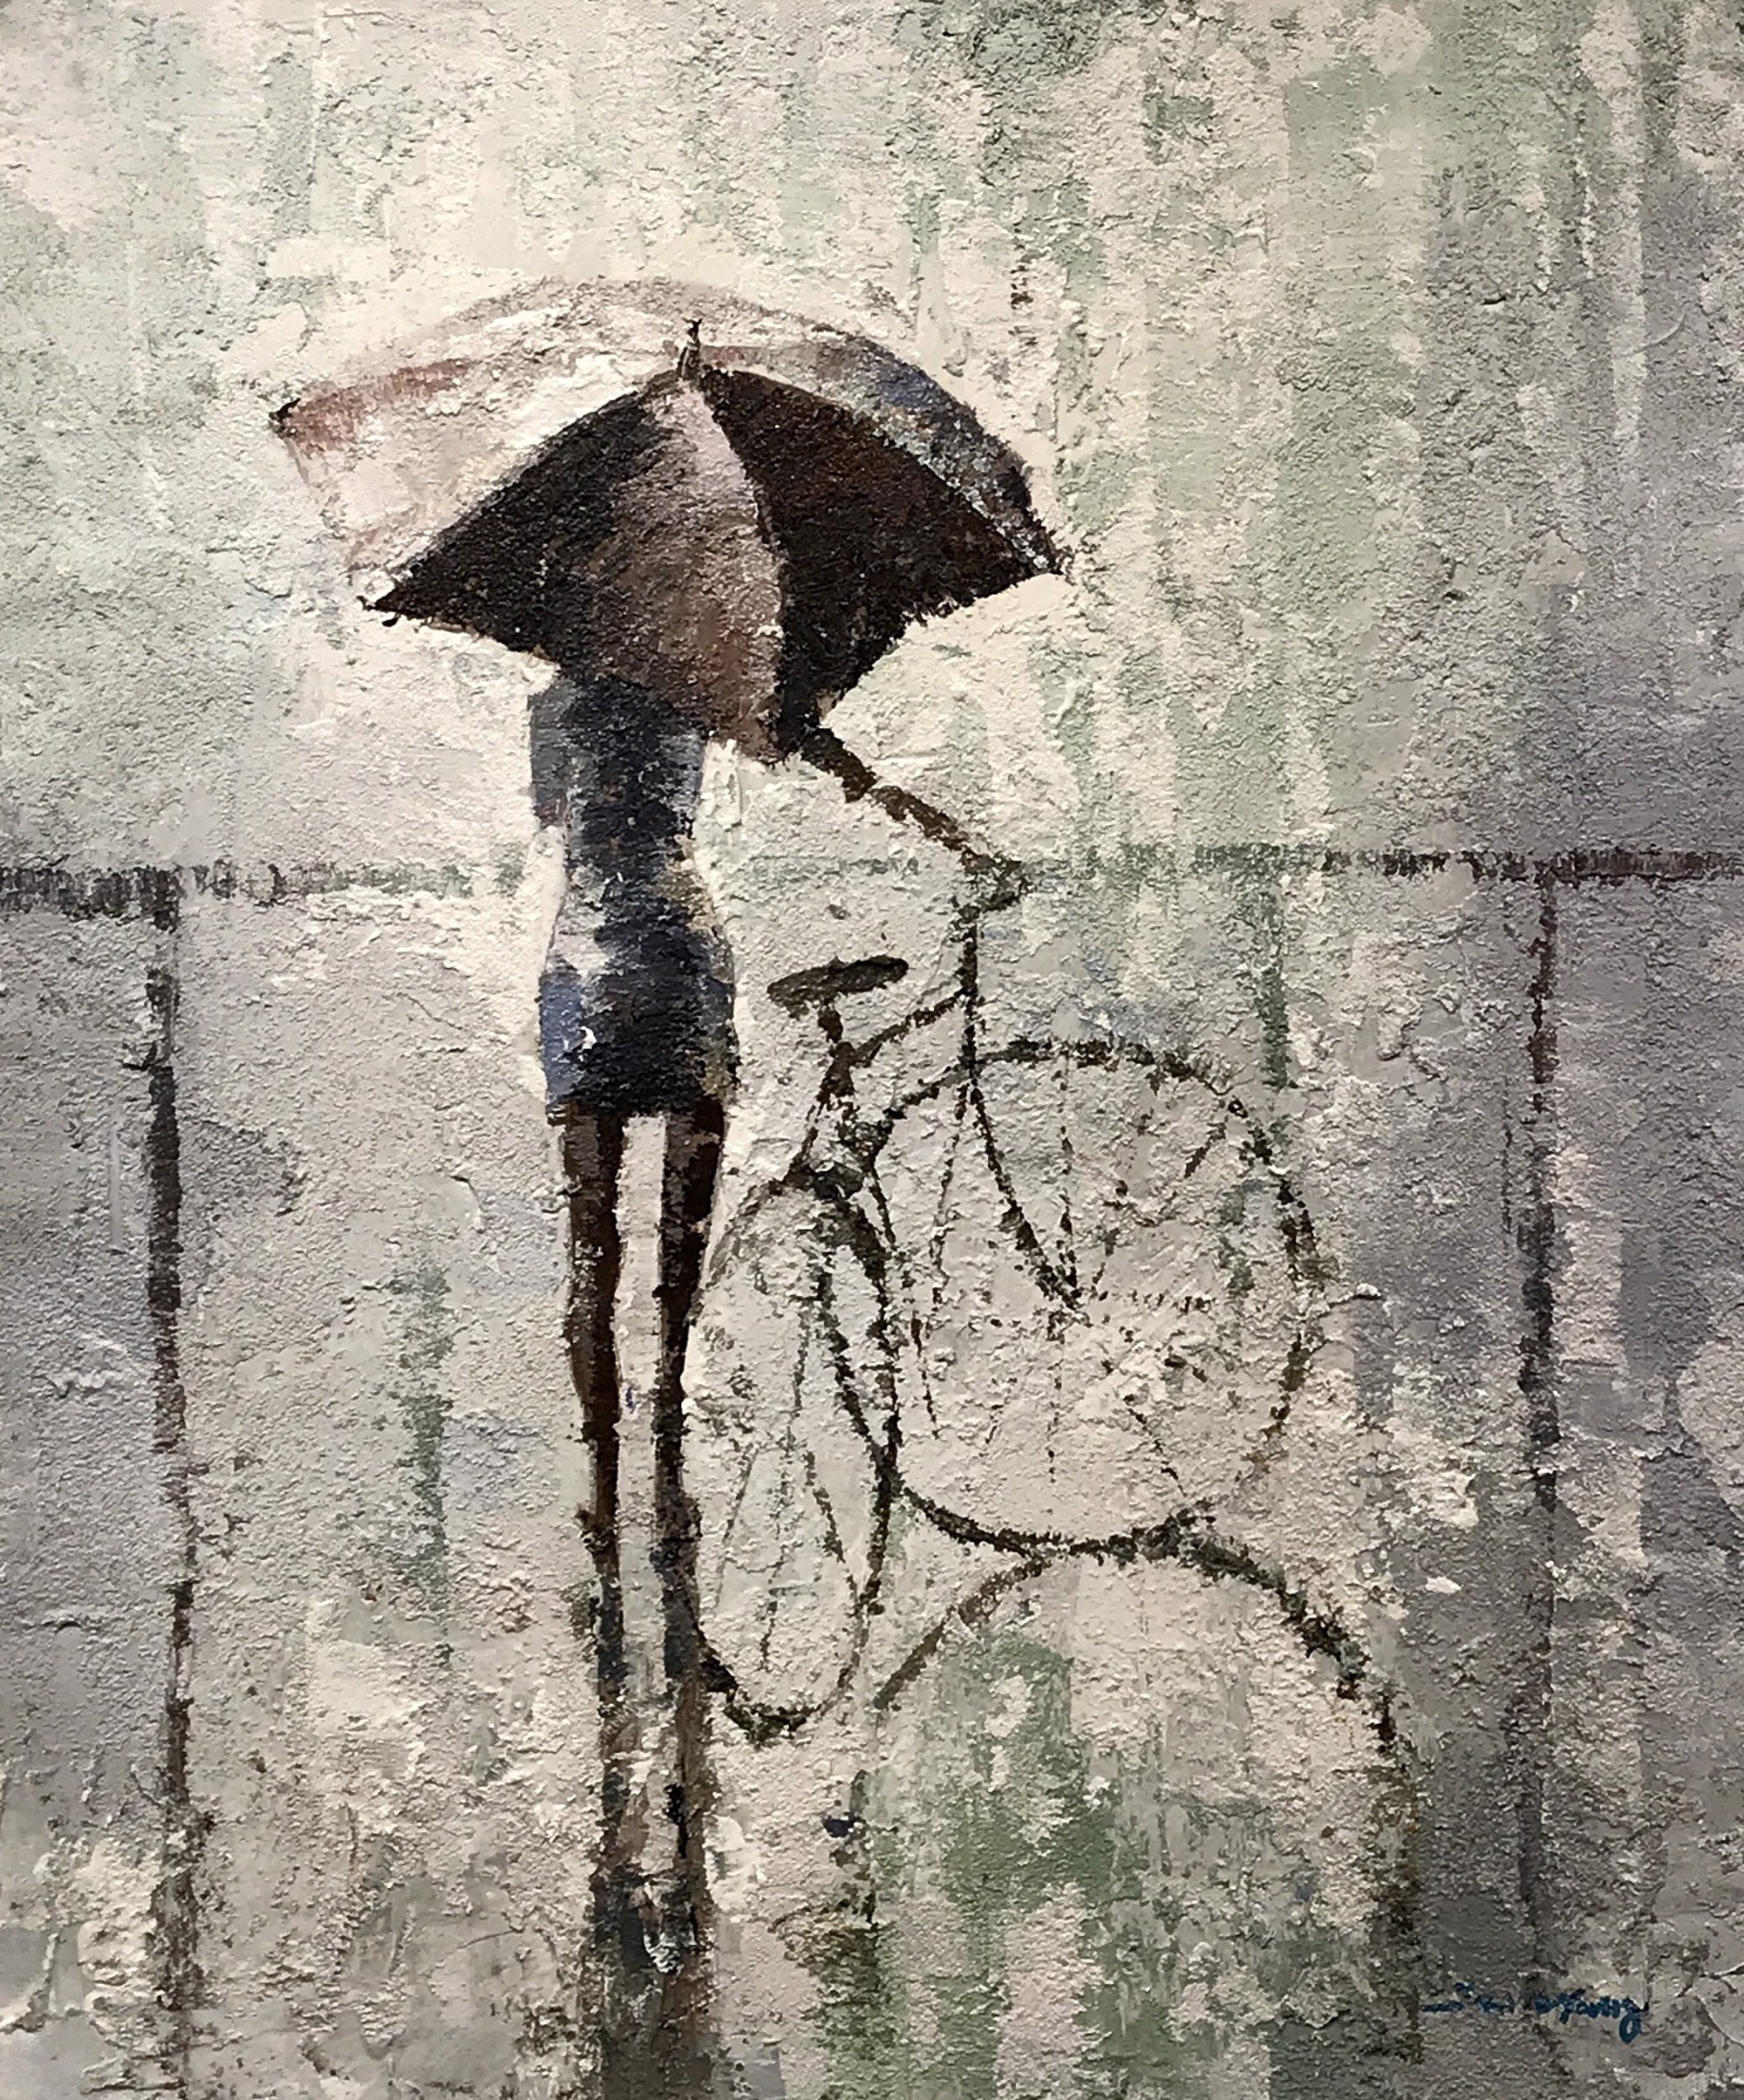 WALKING BICYCLE WITH UMBRELLA by YANG